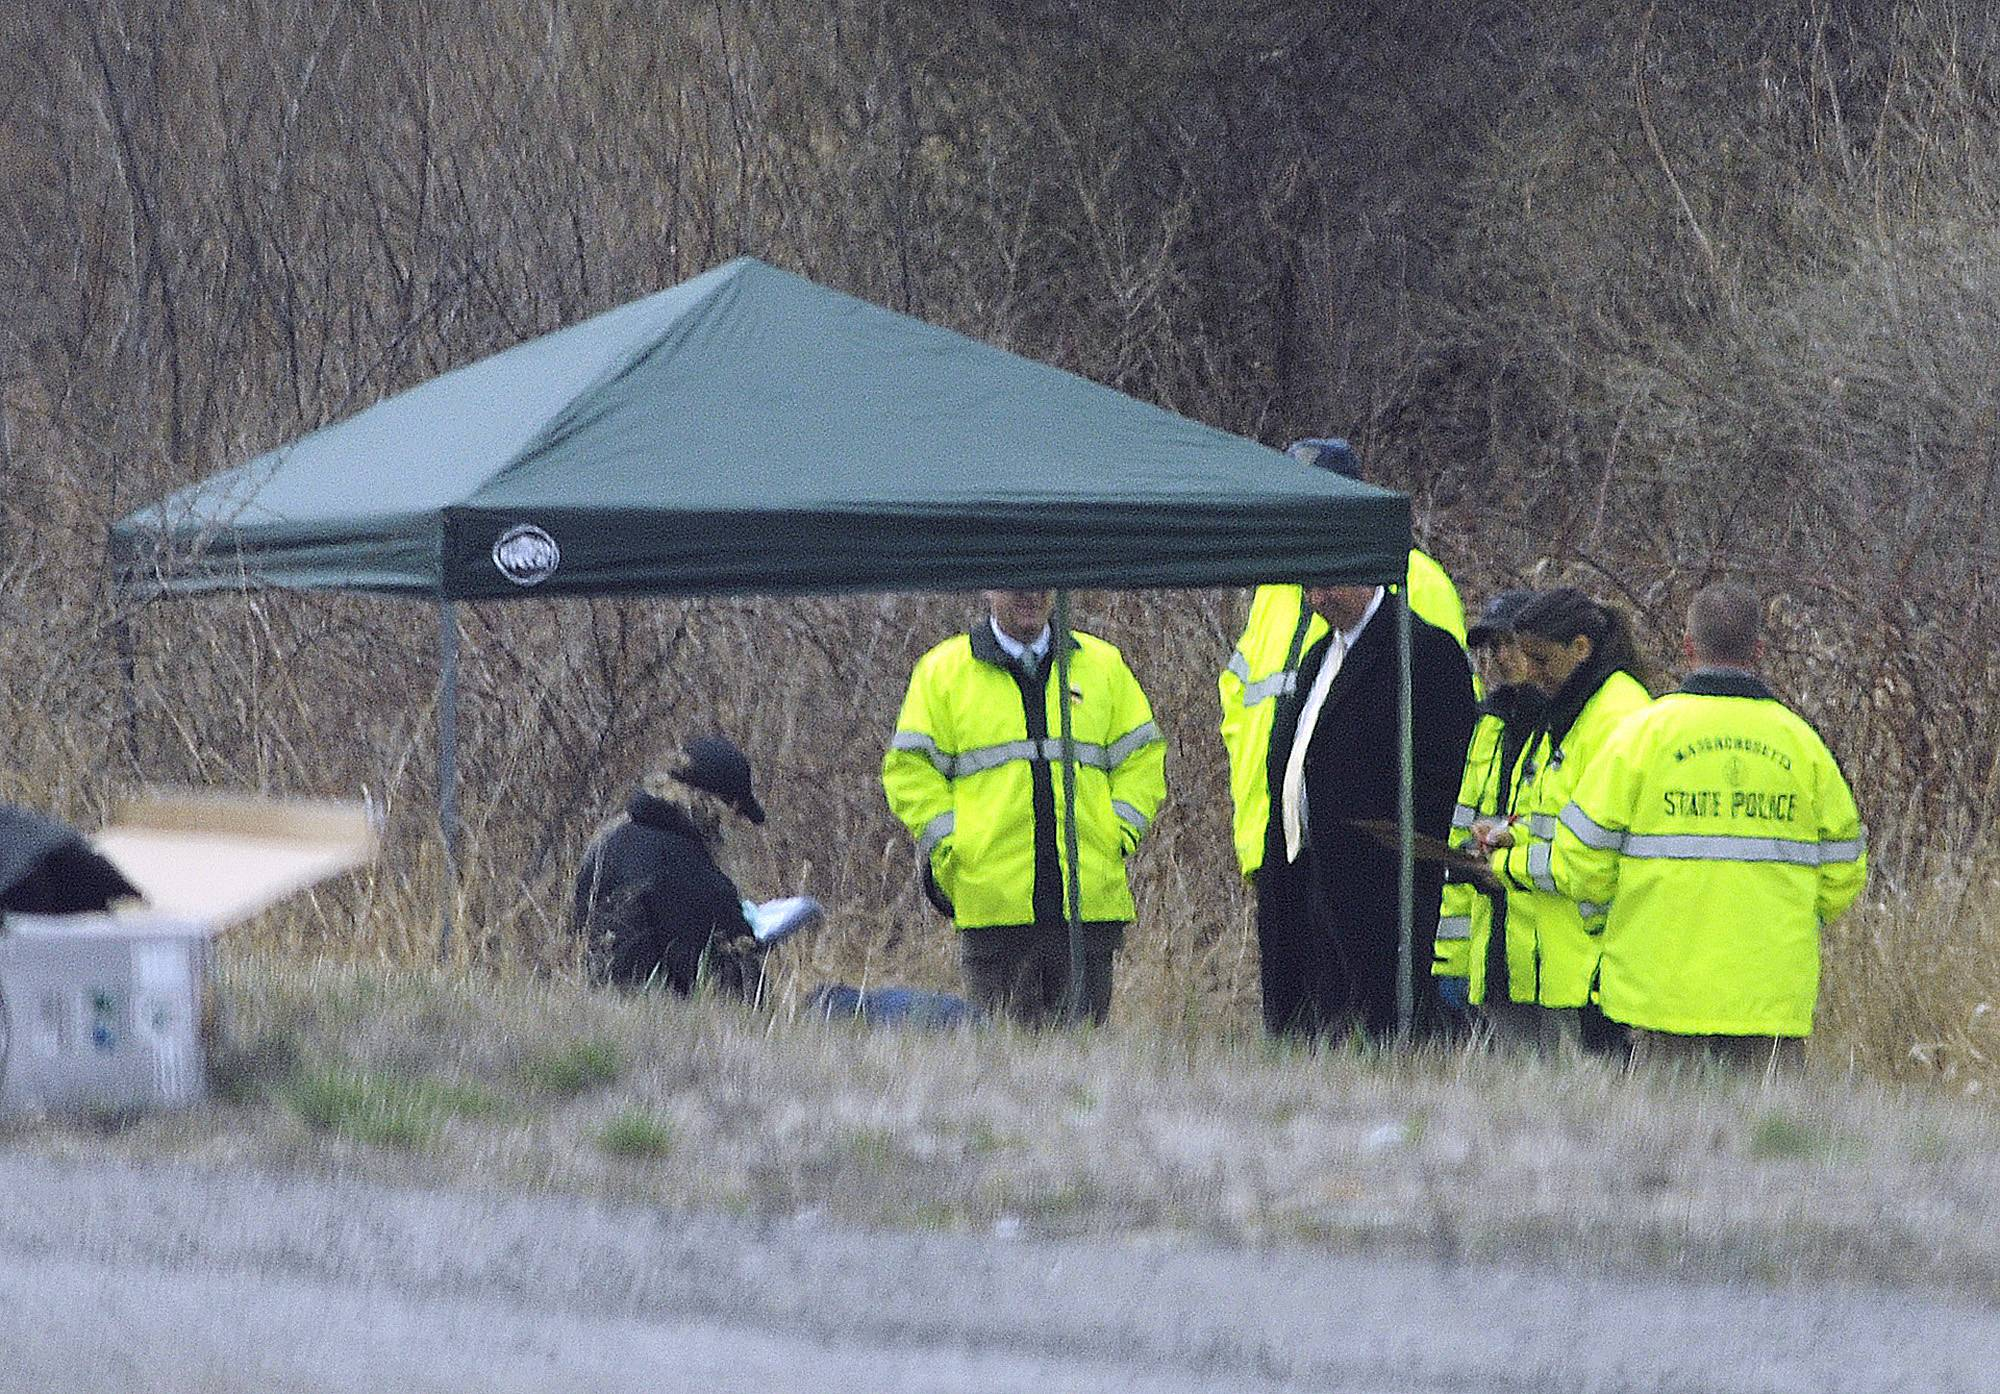 Massachusetts State Police stand along Interstate 190 Friday where police said a child's body was found.